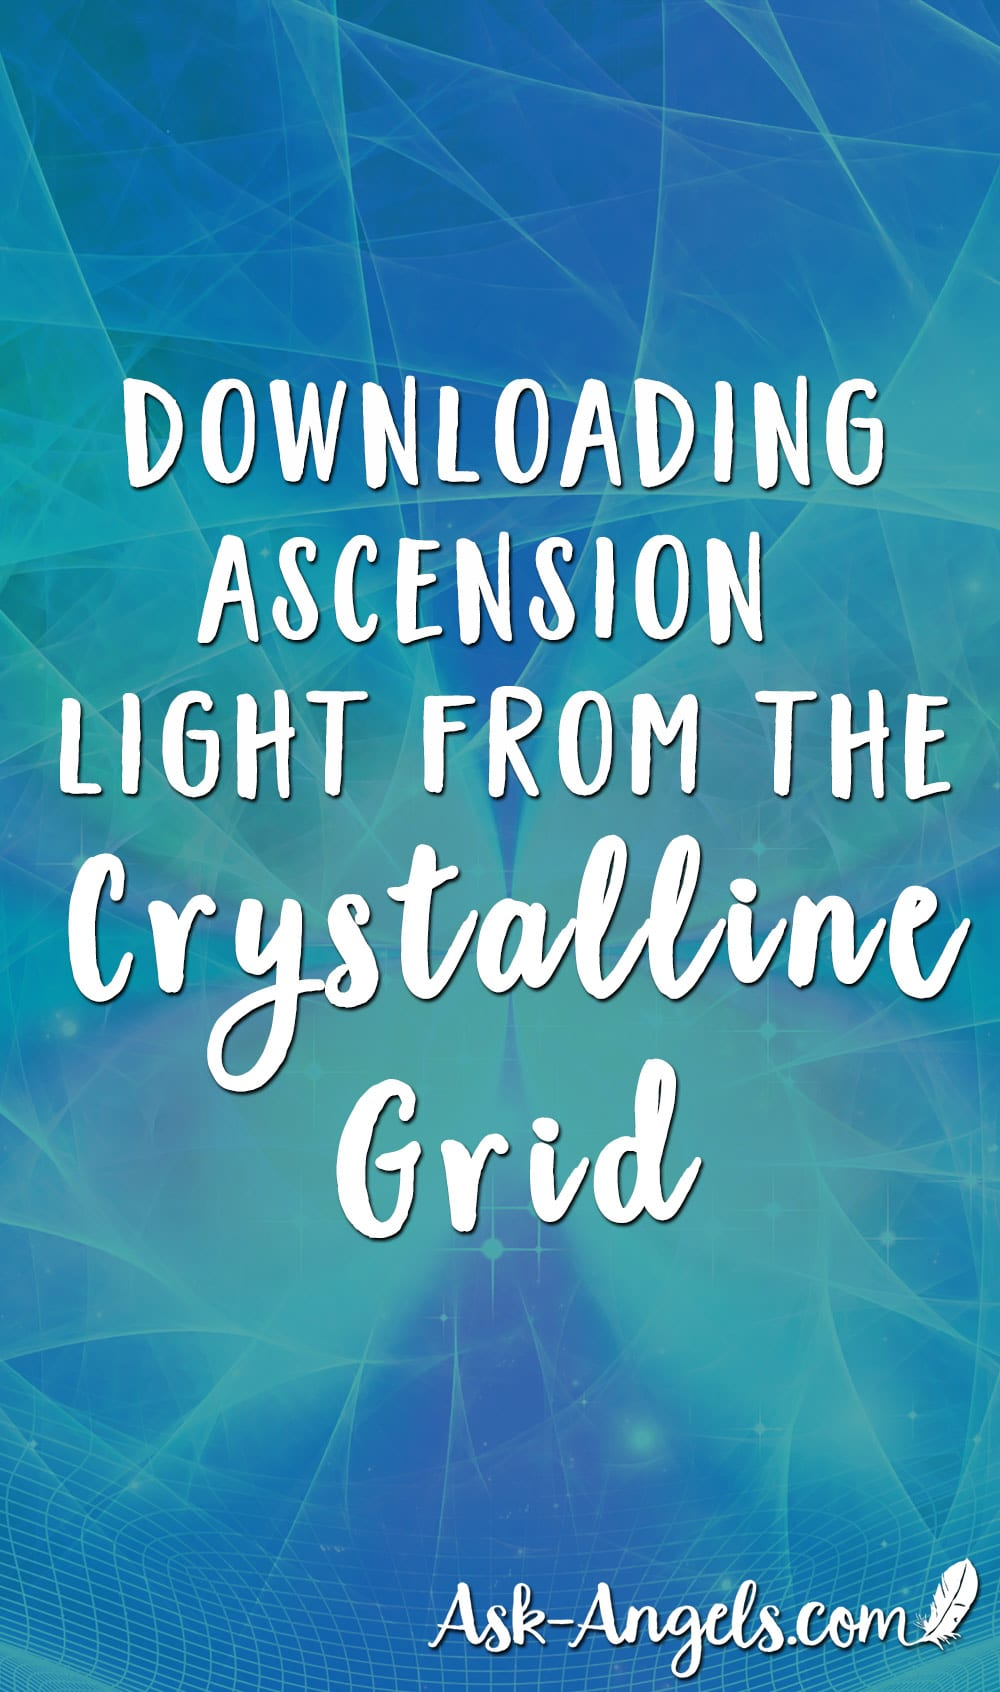 Downloading From The Crystalline Grid